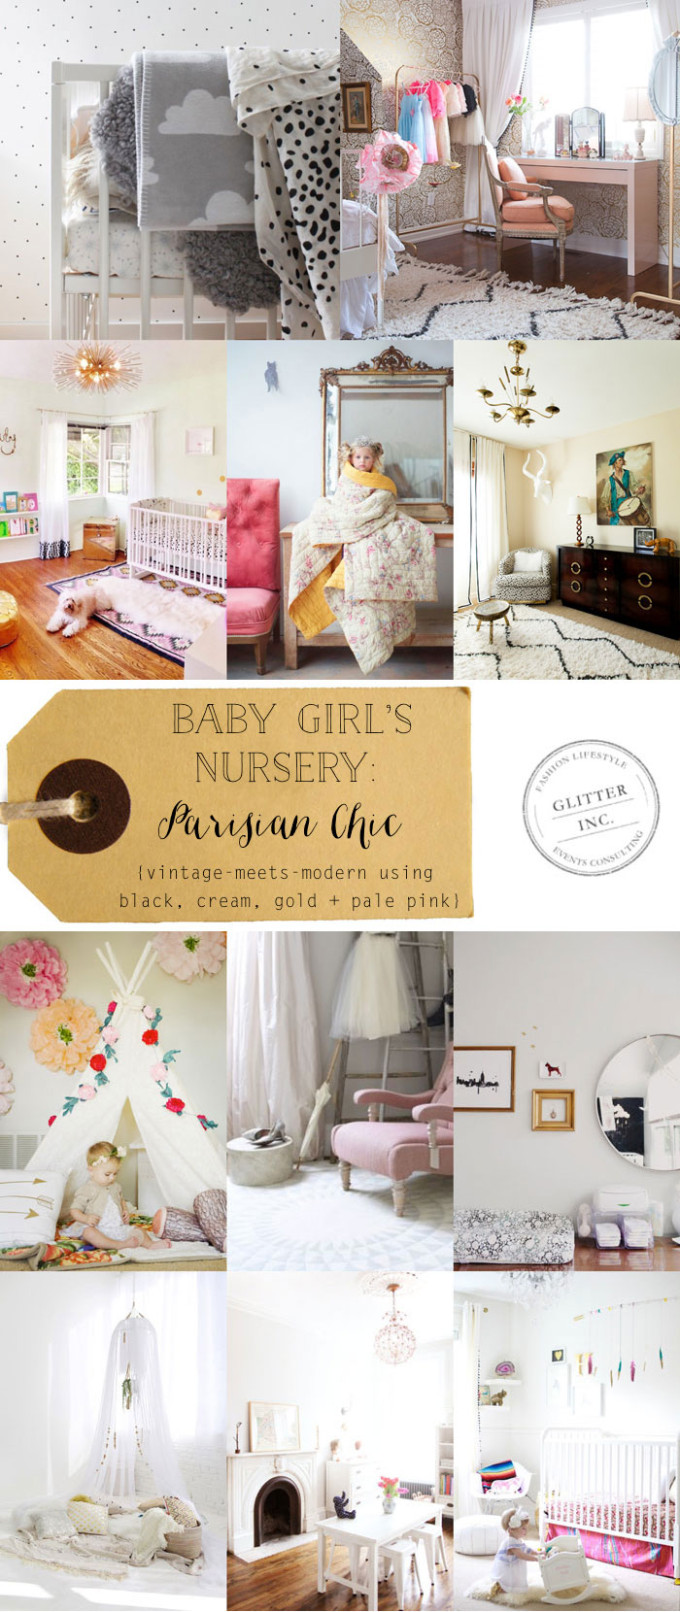 baby-girl-nursery-paris-parisian-chic-black-cream-gold-souk-rug-pale-pink---inspiration---glitterinc.com